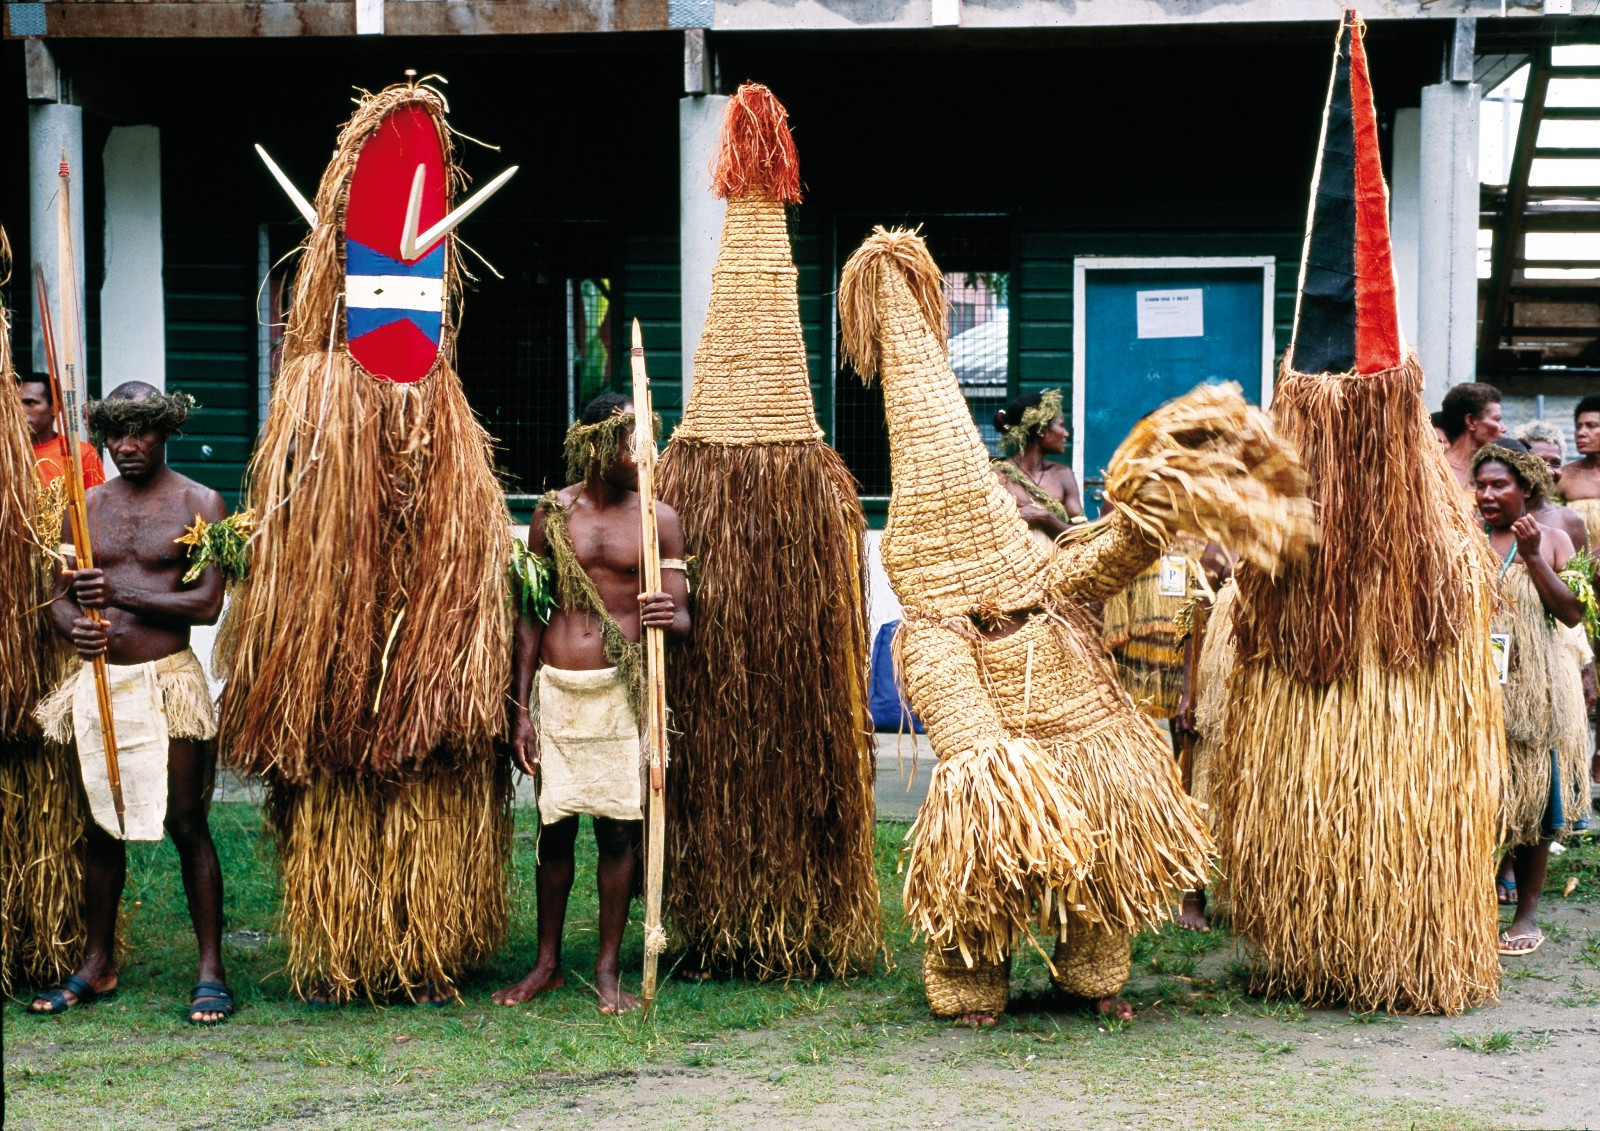 The figures of masked and disguised spirit creatures are found throughout Melanesia, echoing religious practices in which ancestors are believed to visit from the spirit world with messages and affirmations to the living. Few are as iconic as Temotu Province's tamate costume of pigmented and shredded fibre, traditionally burned after performances.